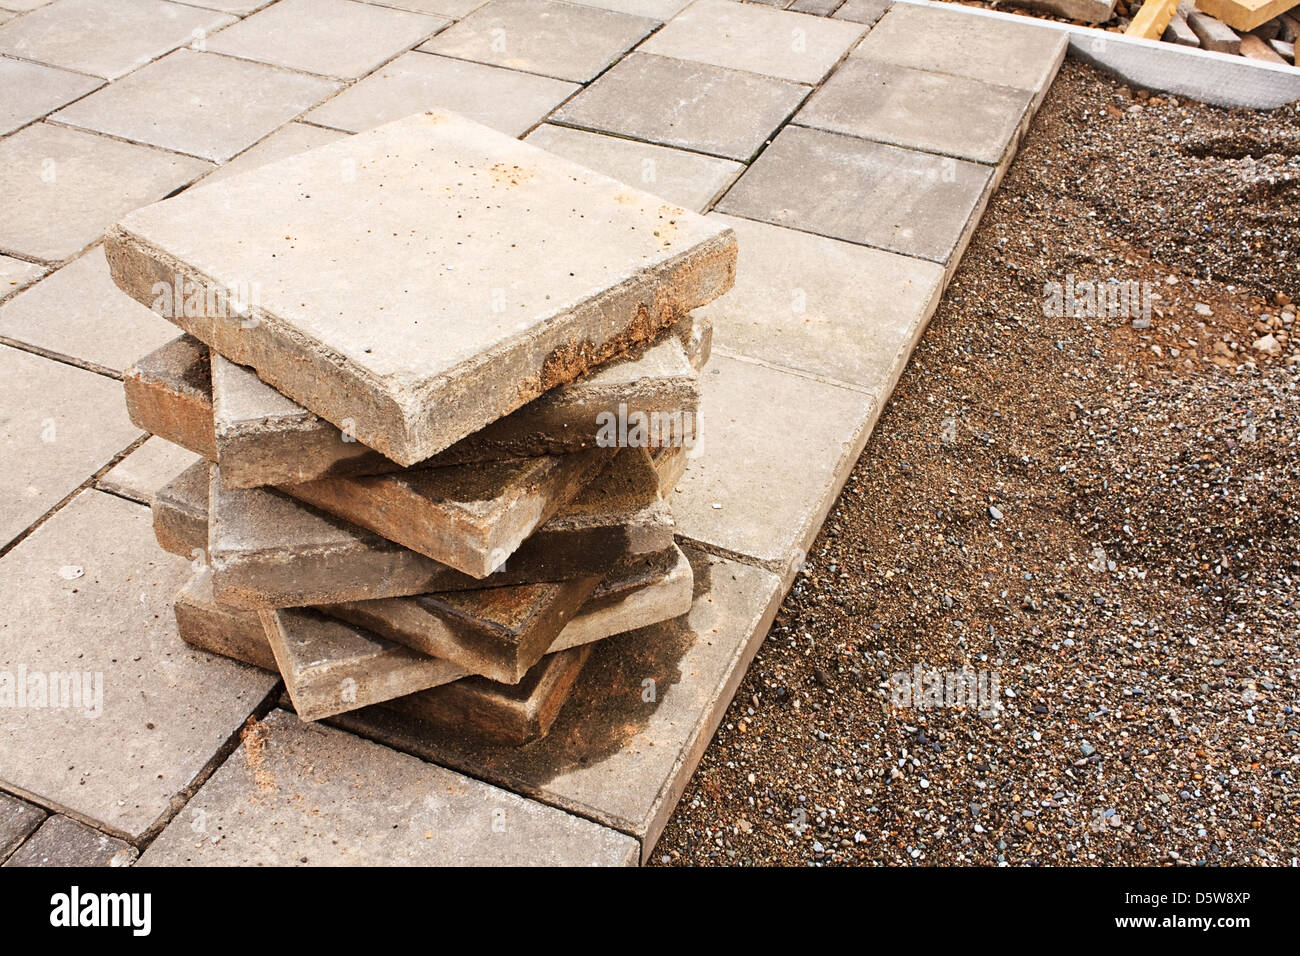 commercial paving in progress laying new pavement at the side of a busy road - Stock Image